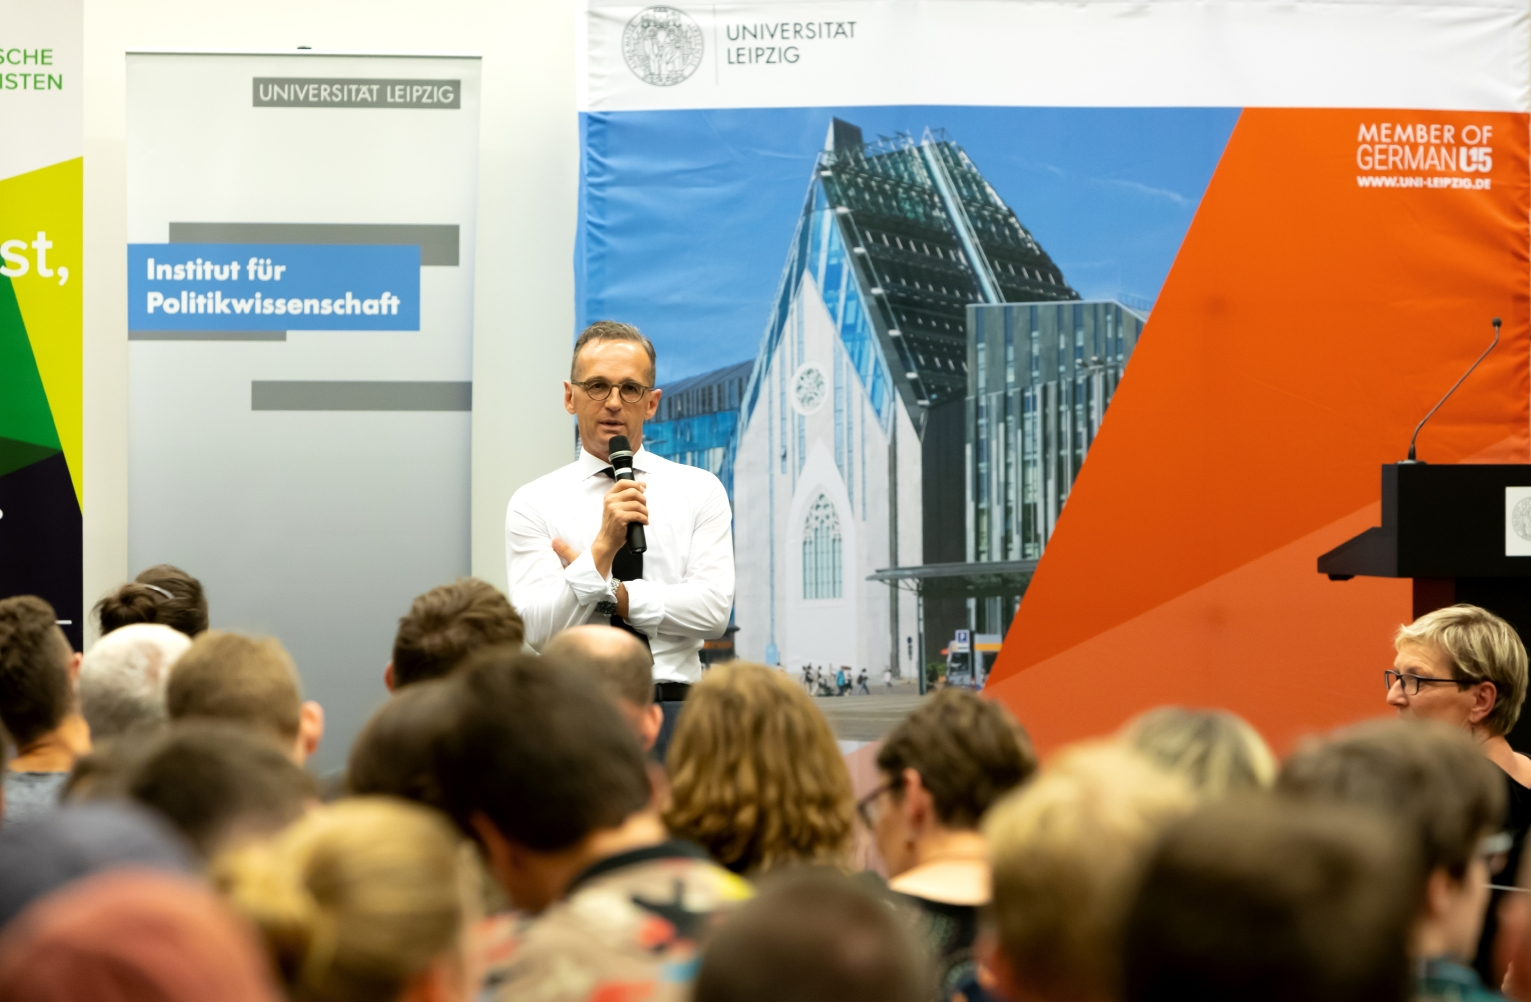 Heiko Maas in der Universitätsbibliothek Albertina